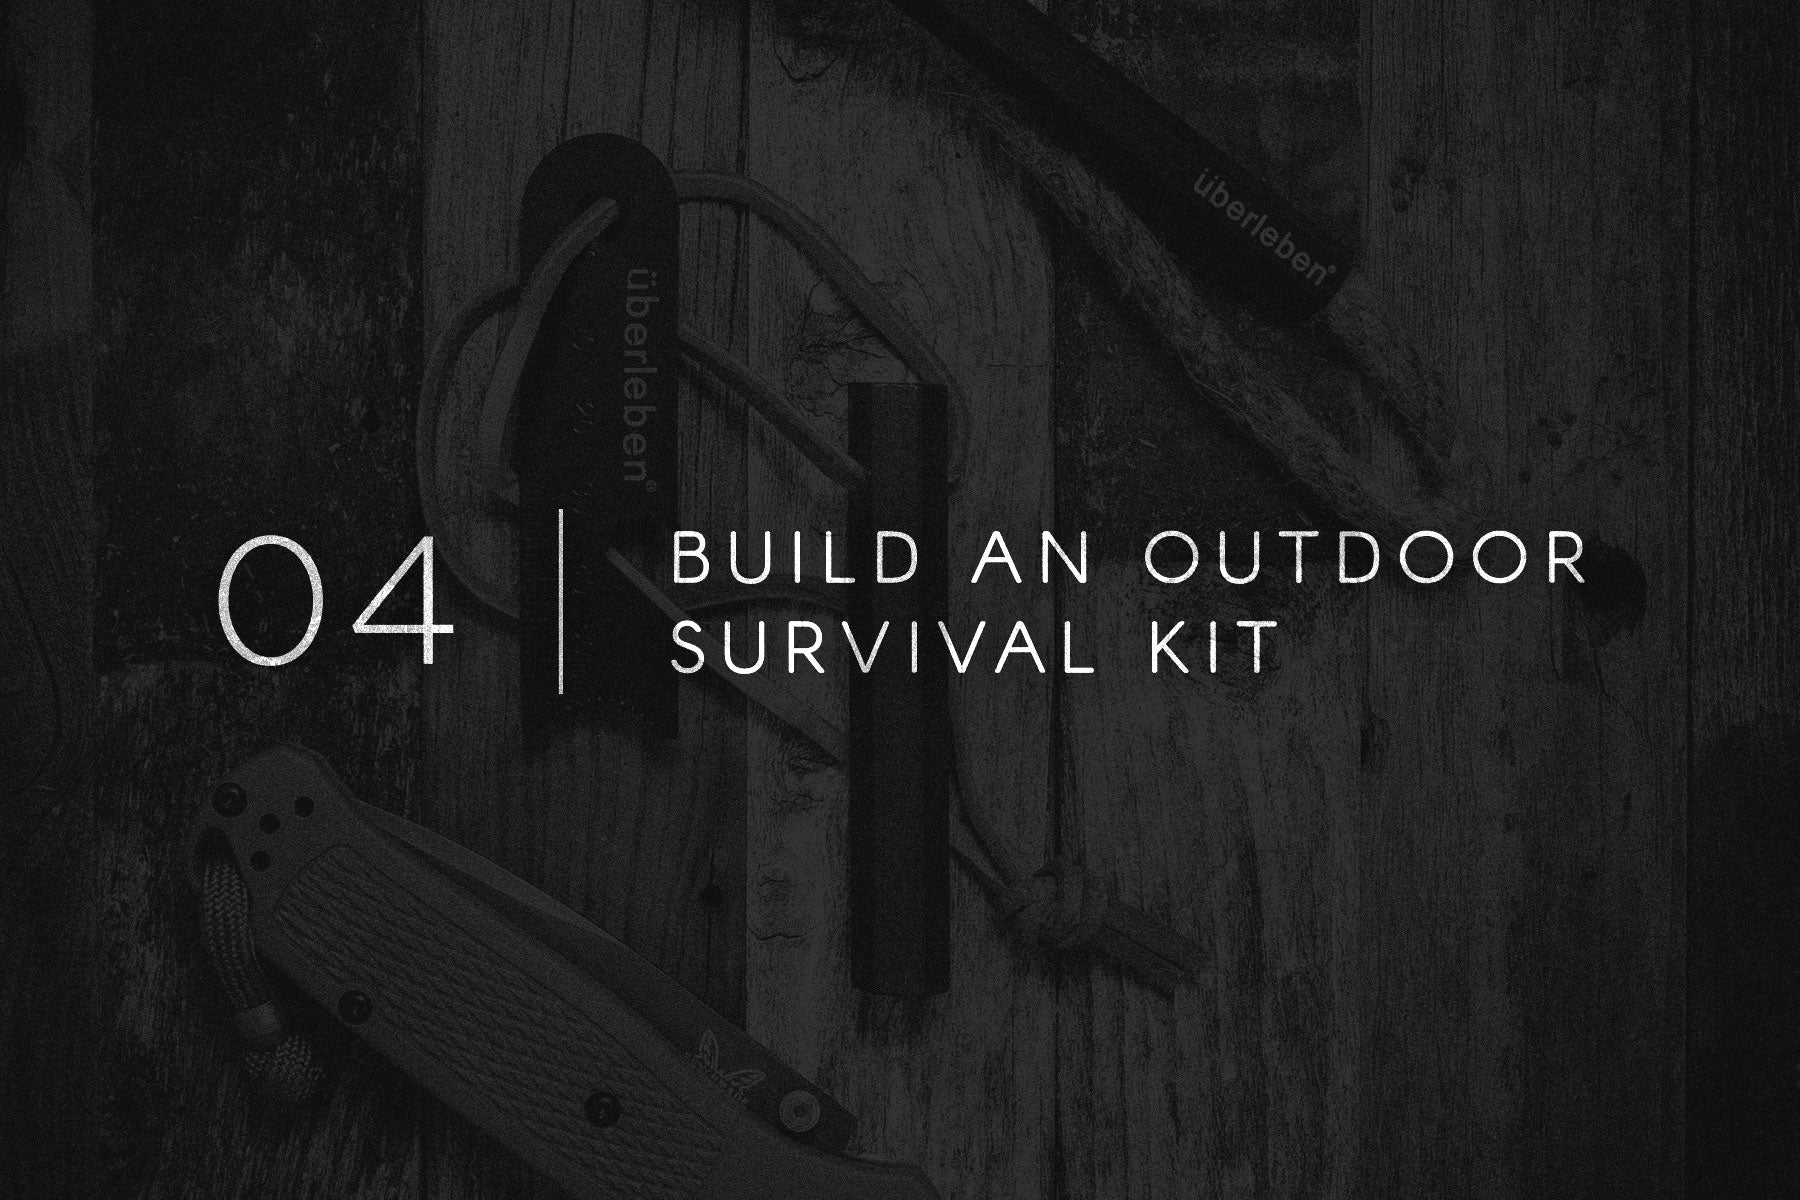 Field Notes 04 - Build An Outdoor Survival Kit